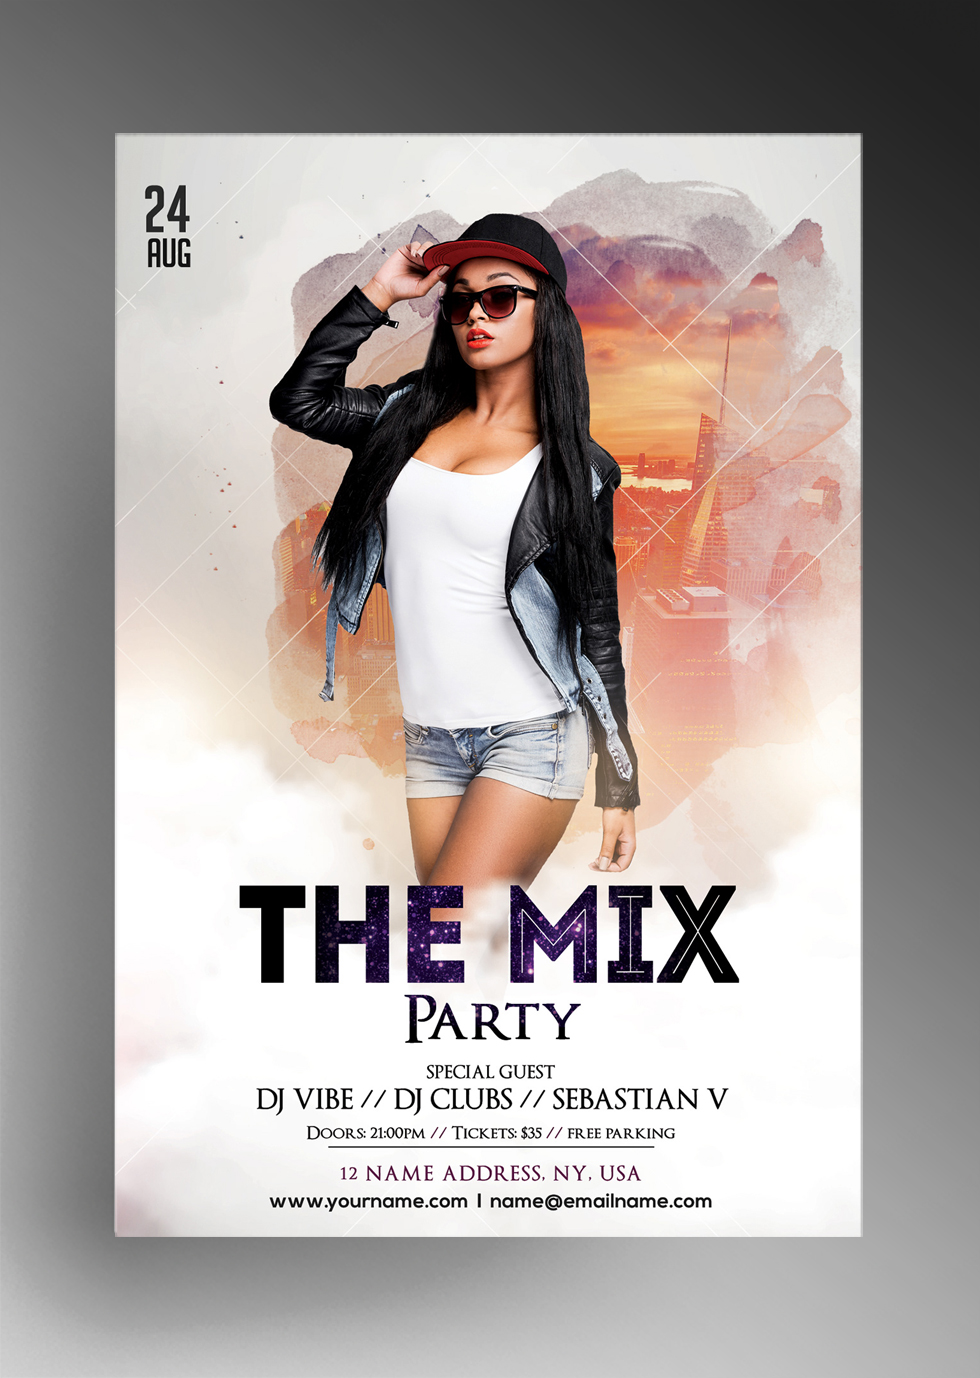 The Mix - Free White Party PSD Flyer Template